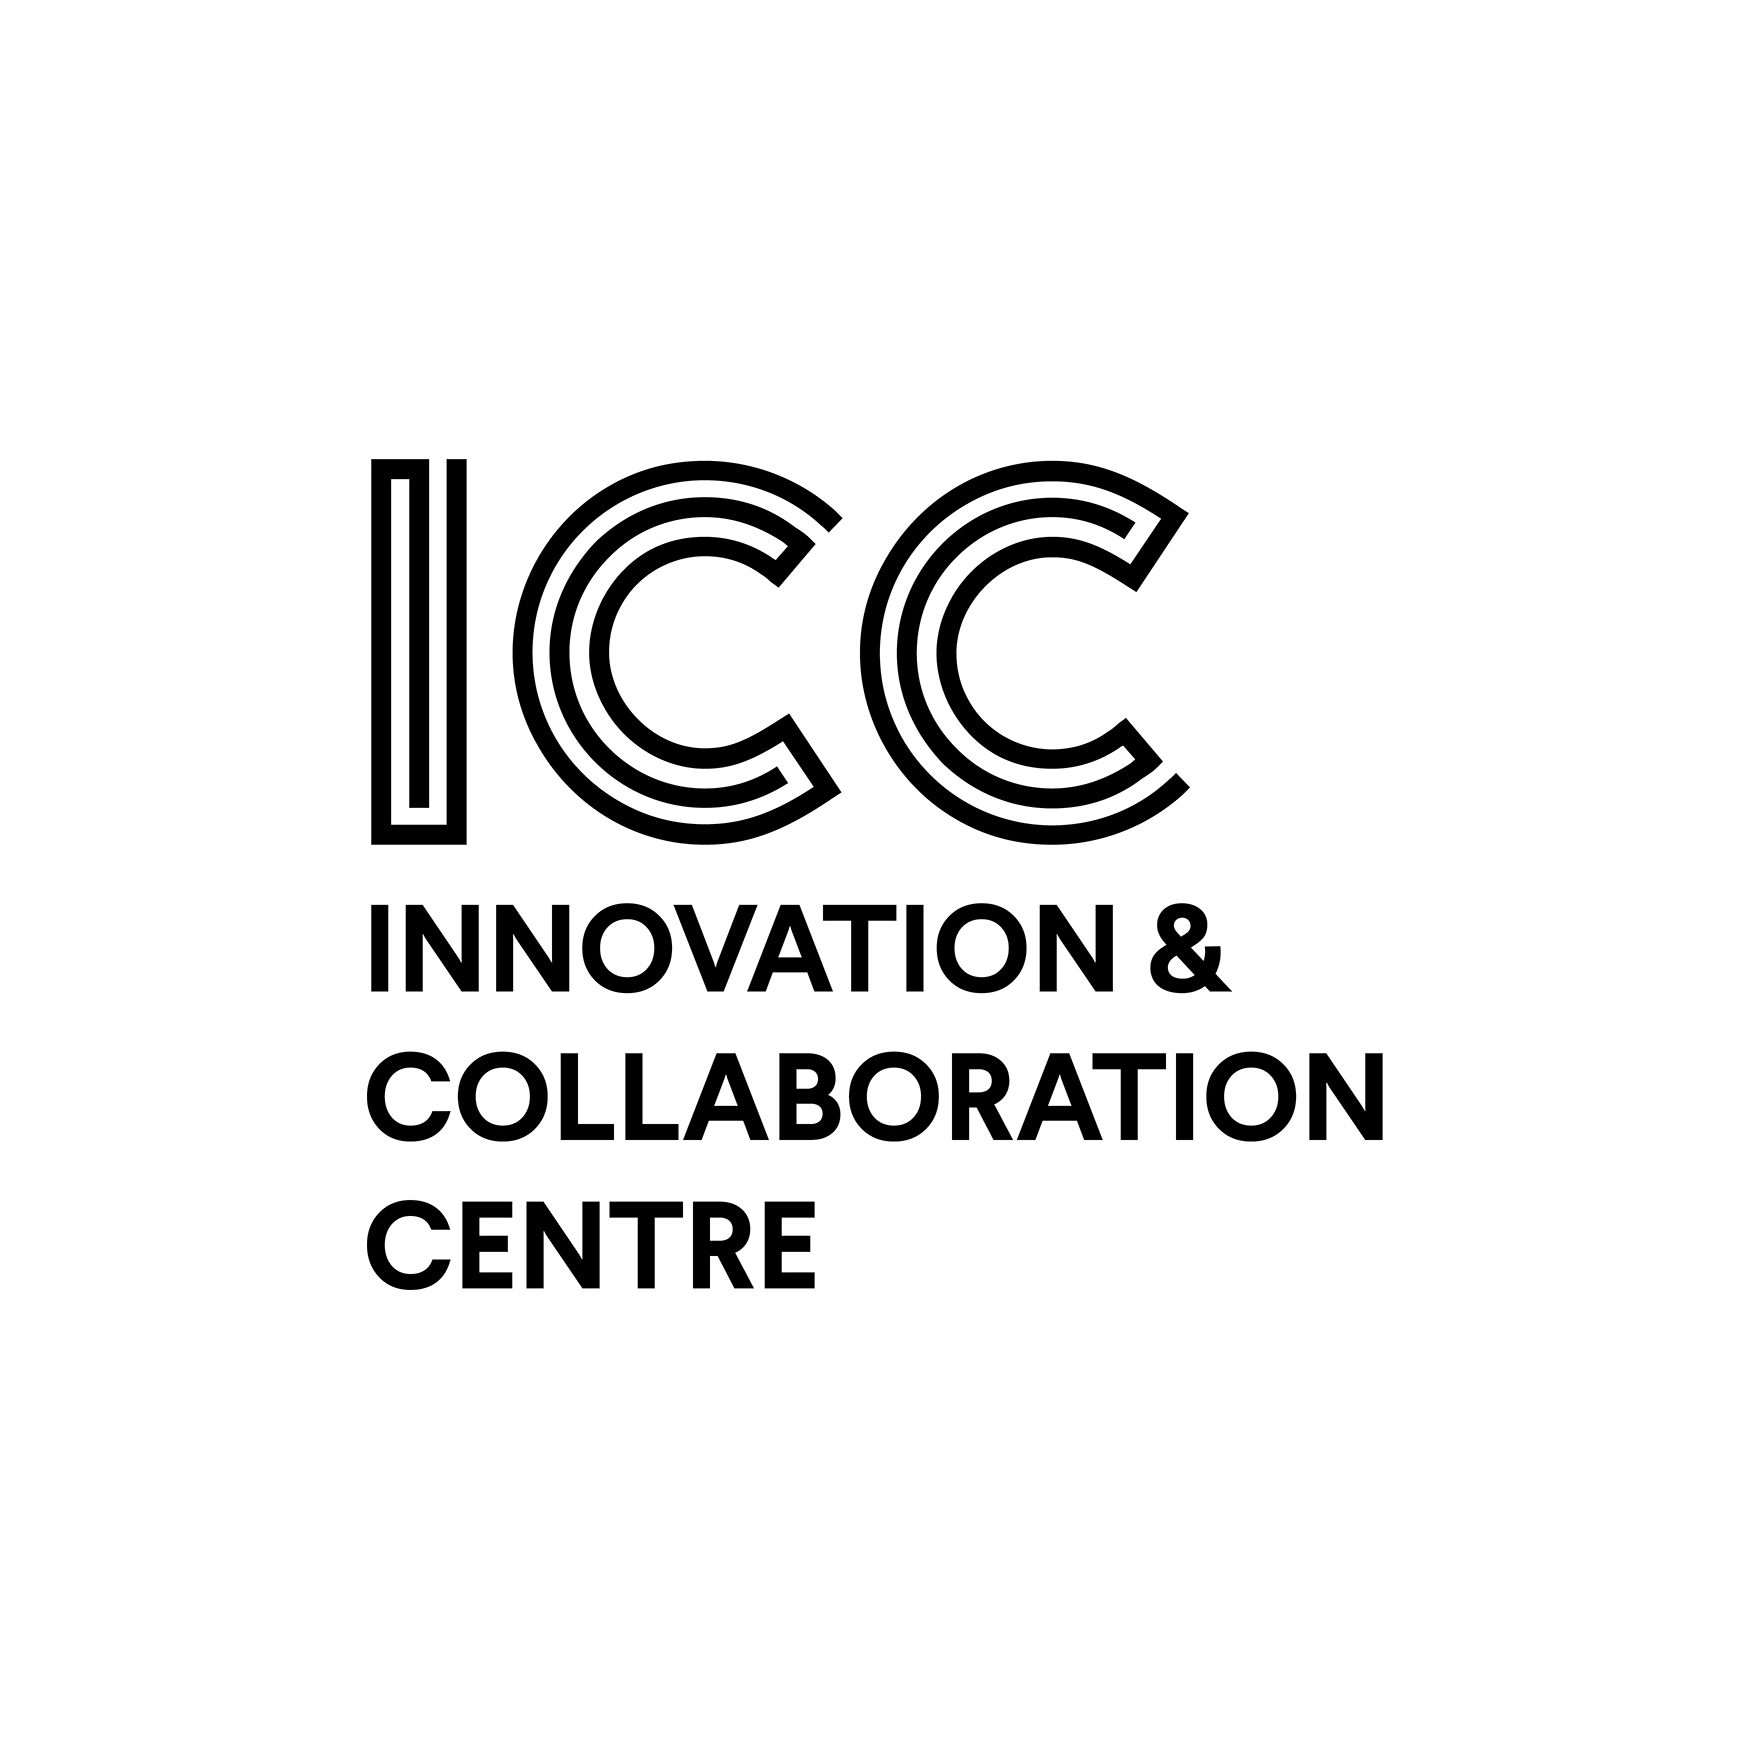 Innovation & Collaboration Centre